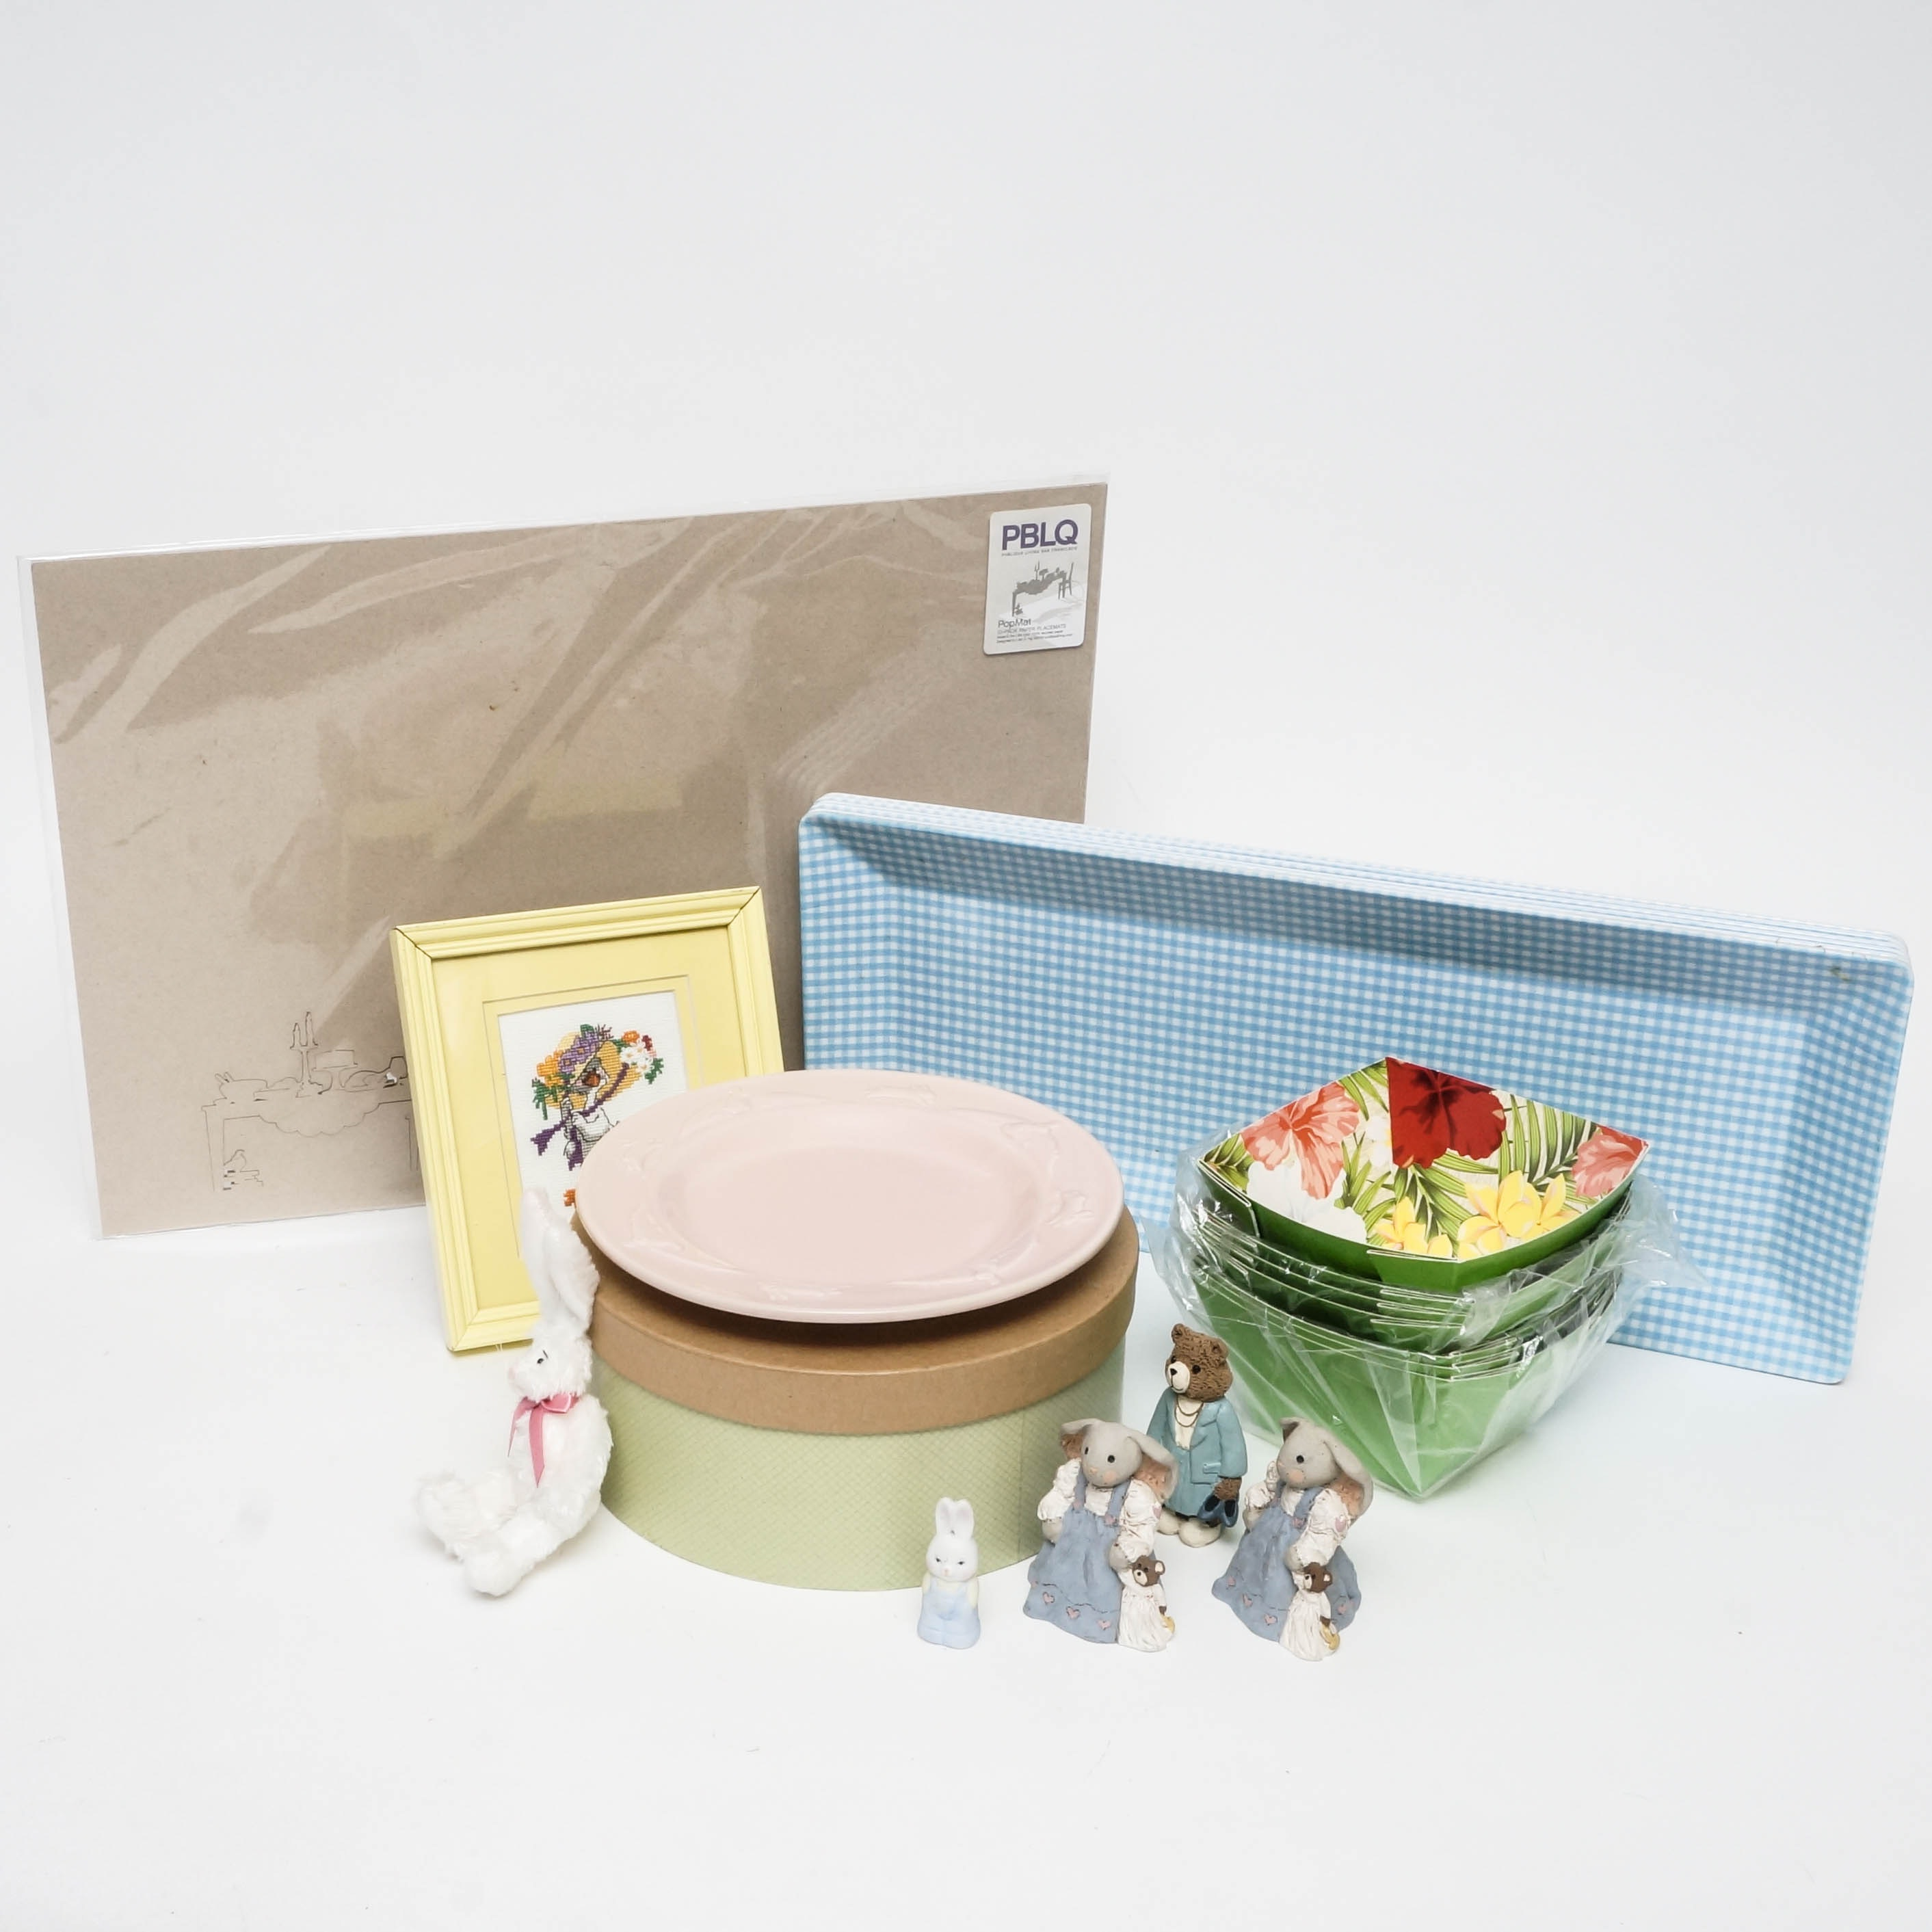 Easter and Spring-Themed Tableware and Decor